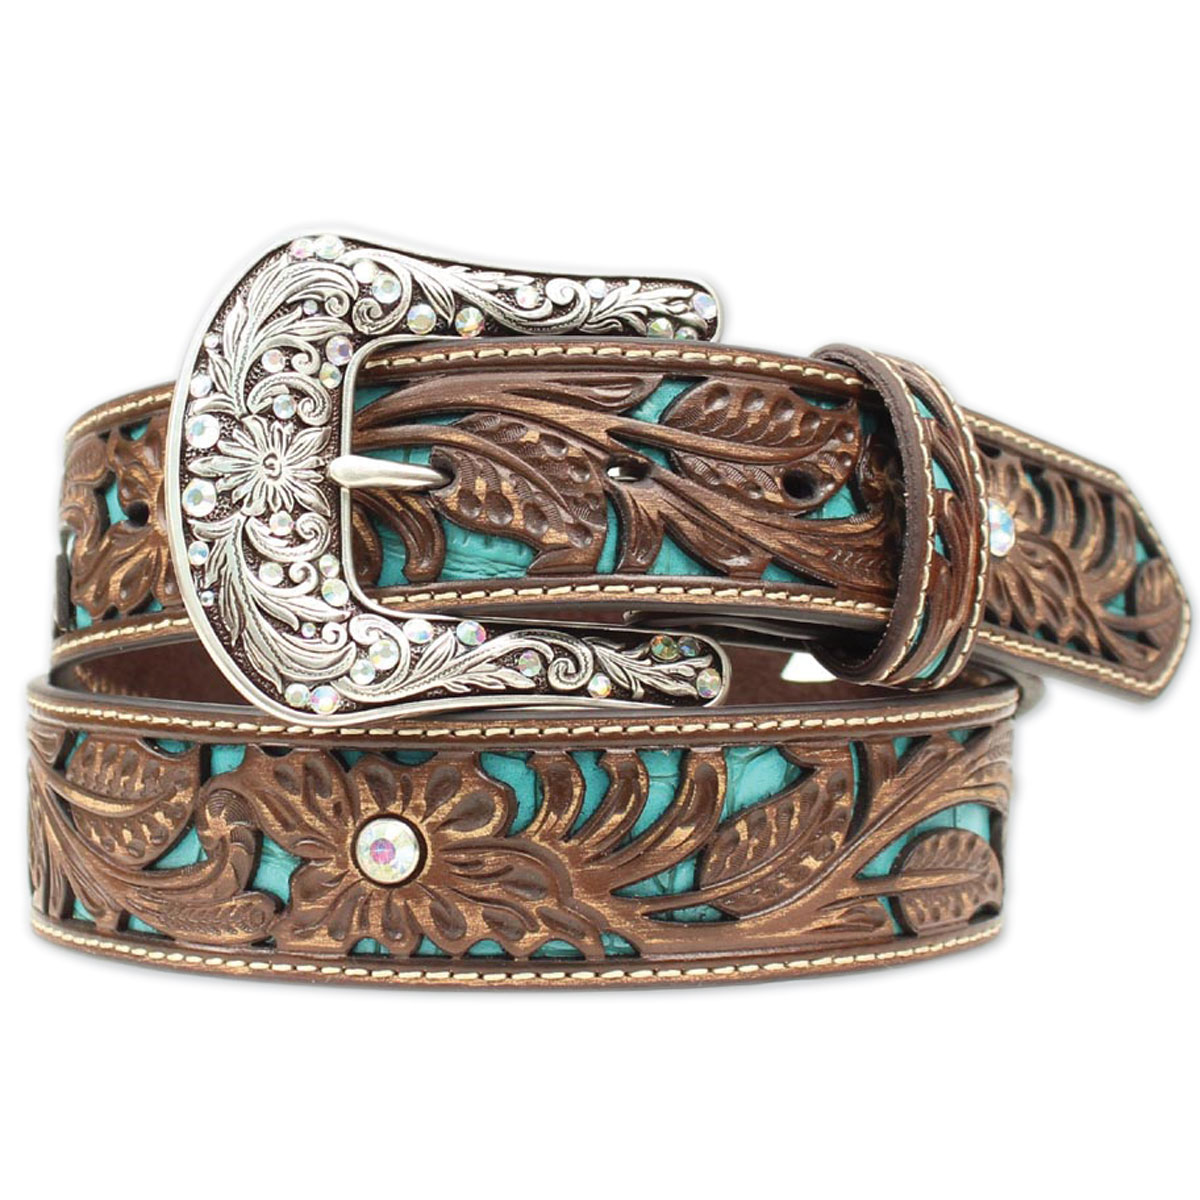 Ariat Women's Turquoise Overlay Belt